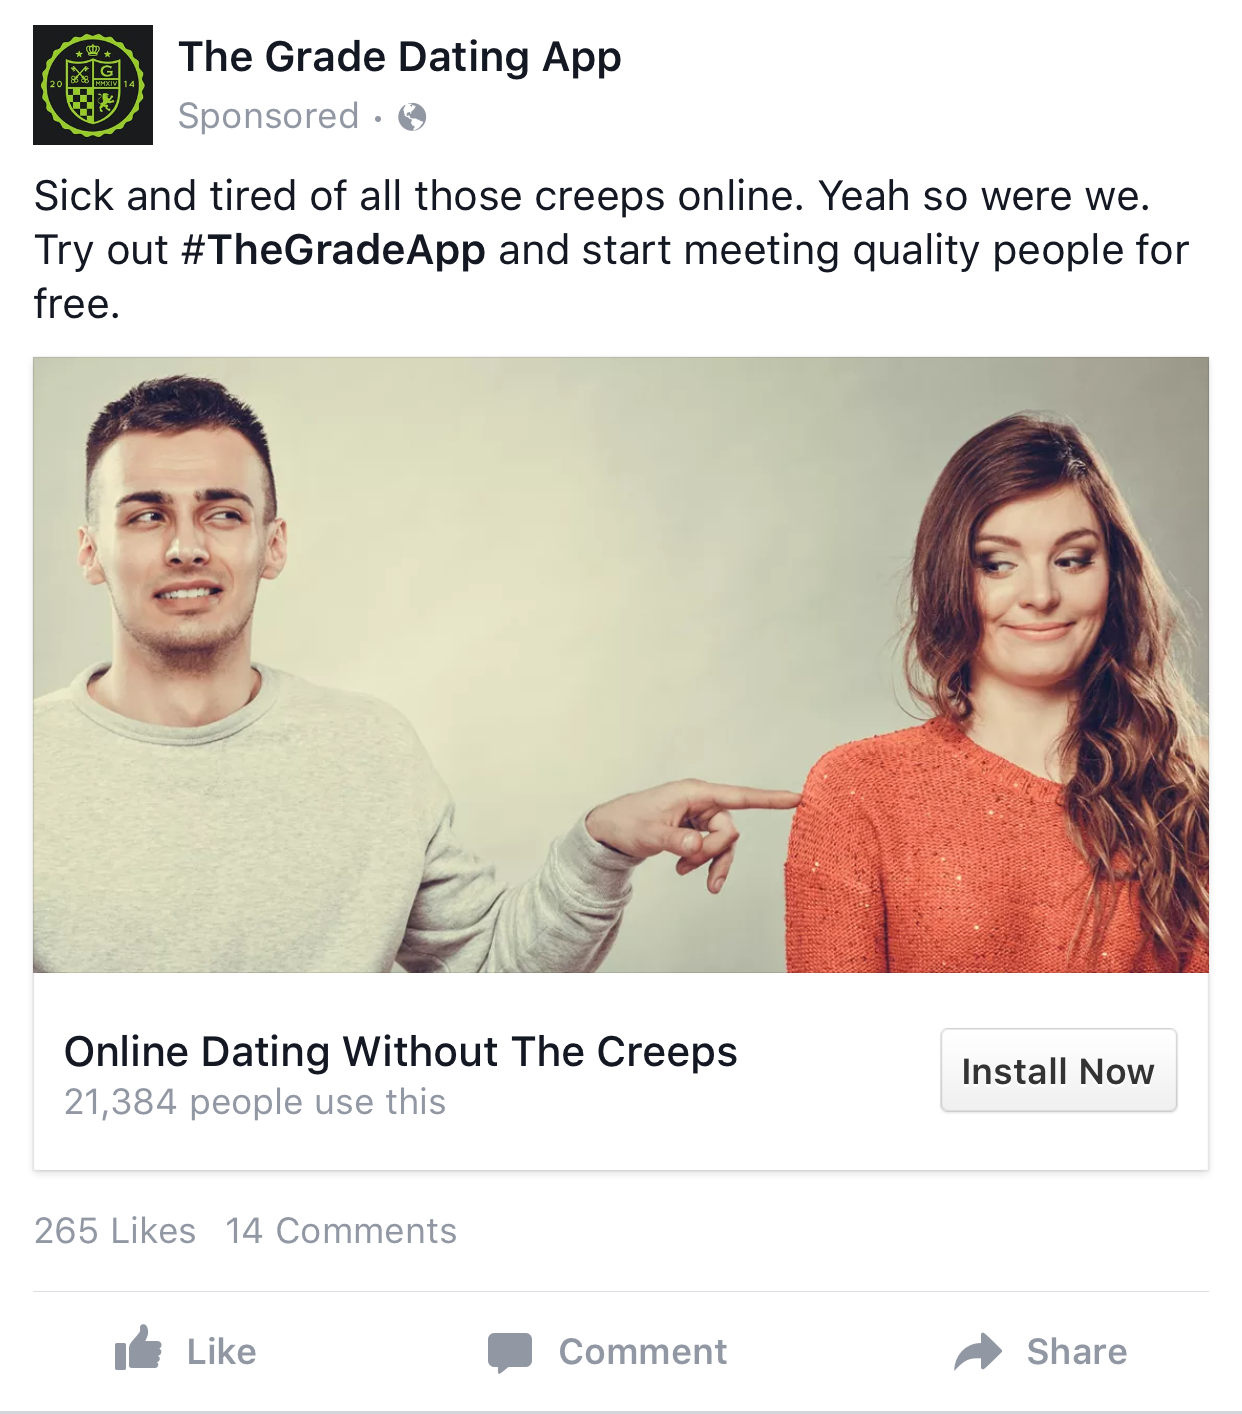 Online dating ads examples